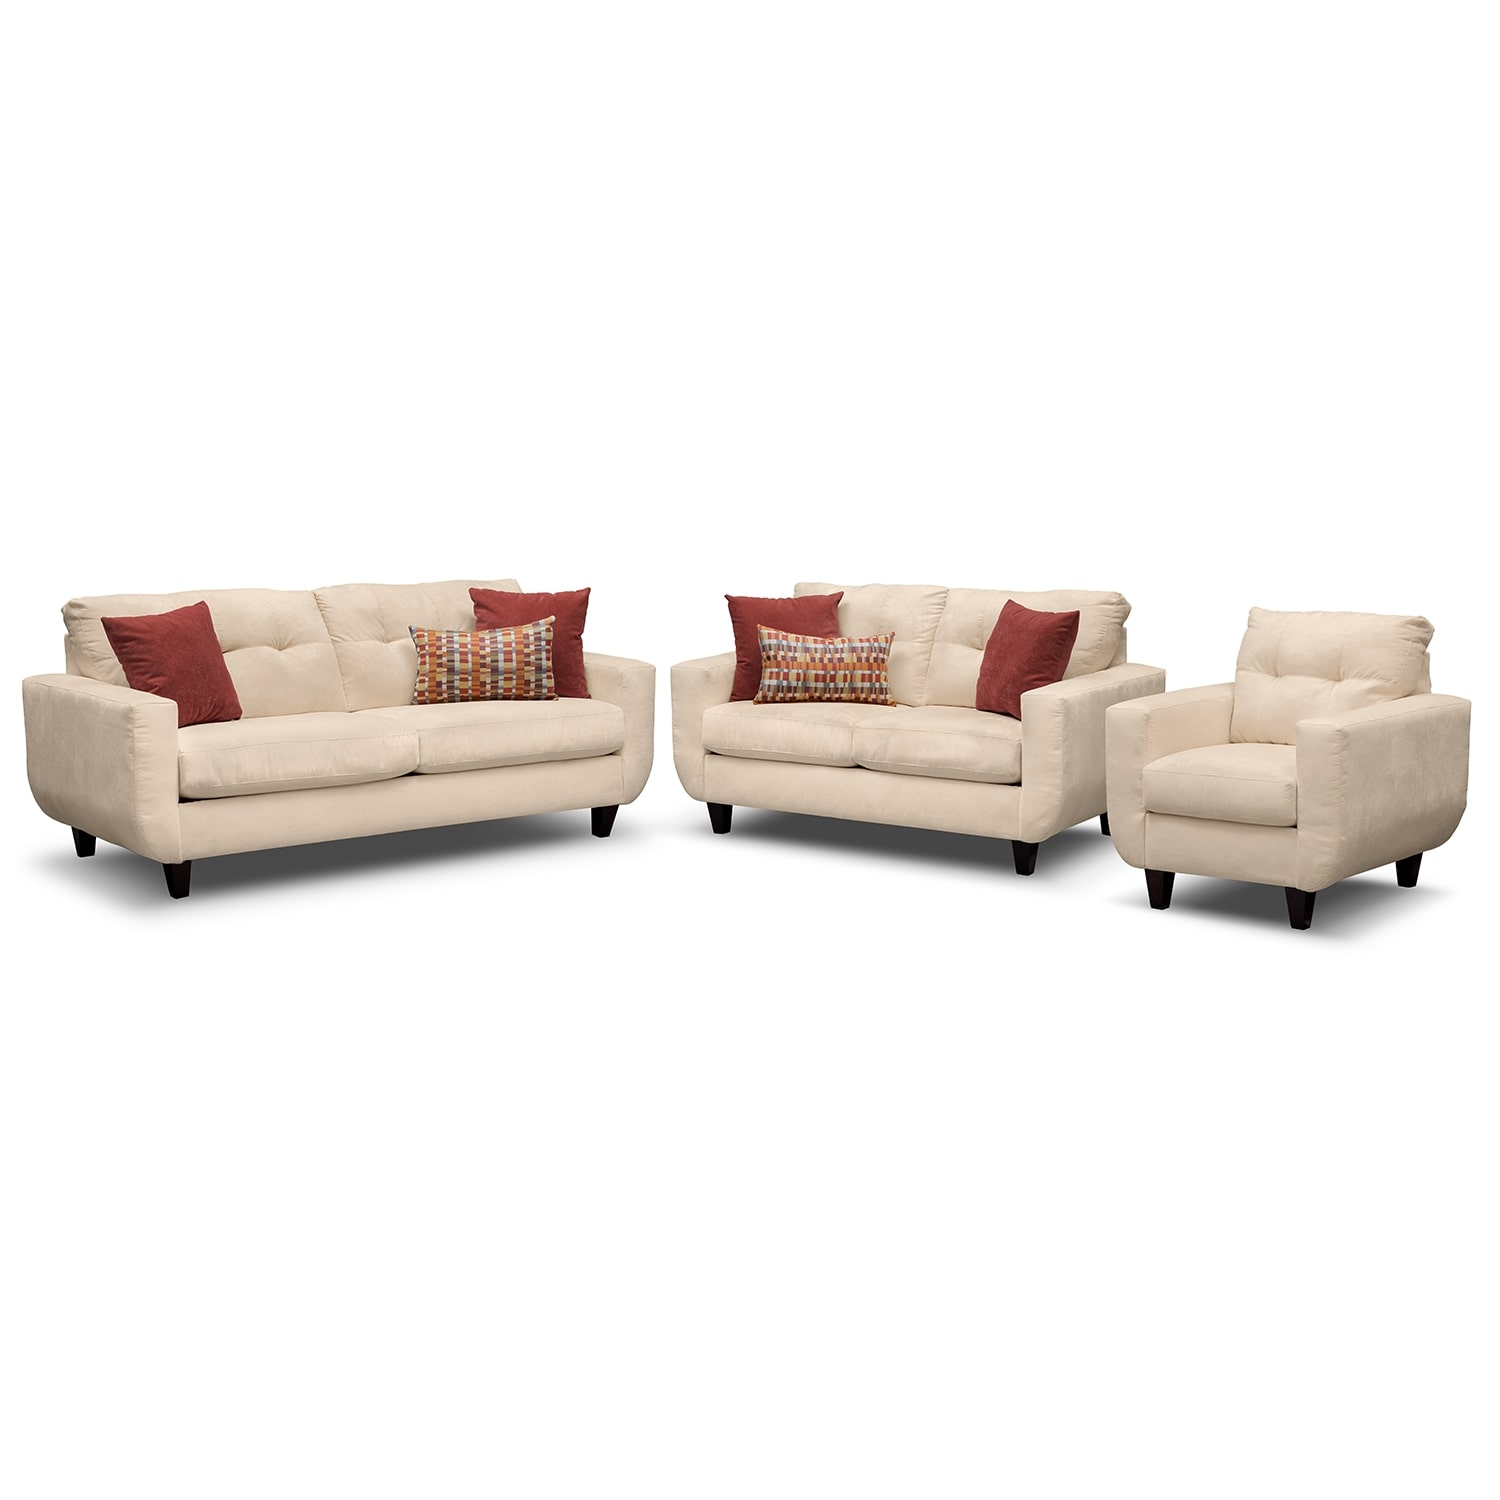 Living Room Furniture - West Village Sofa, Loveseat and Chair - Cream